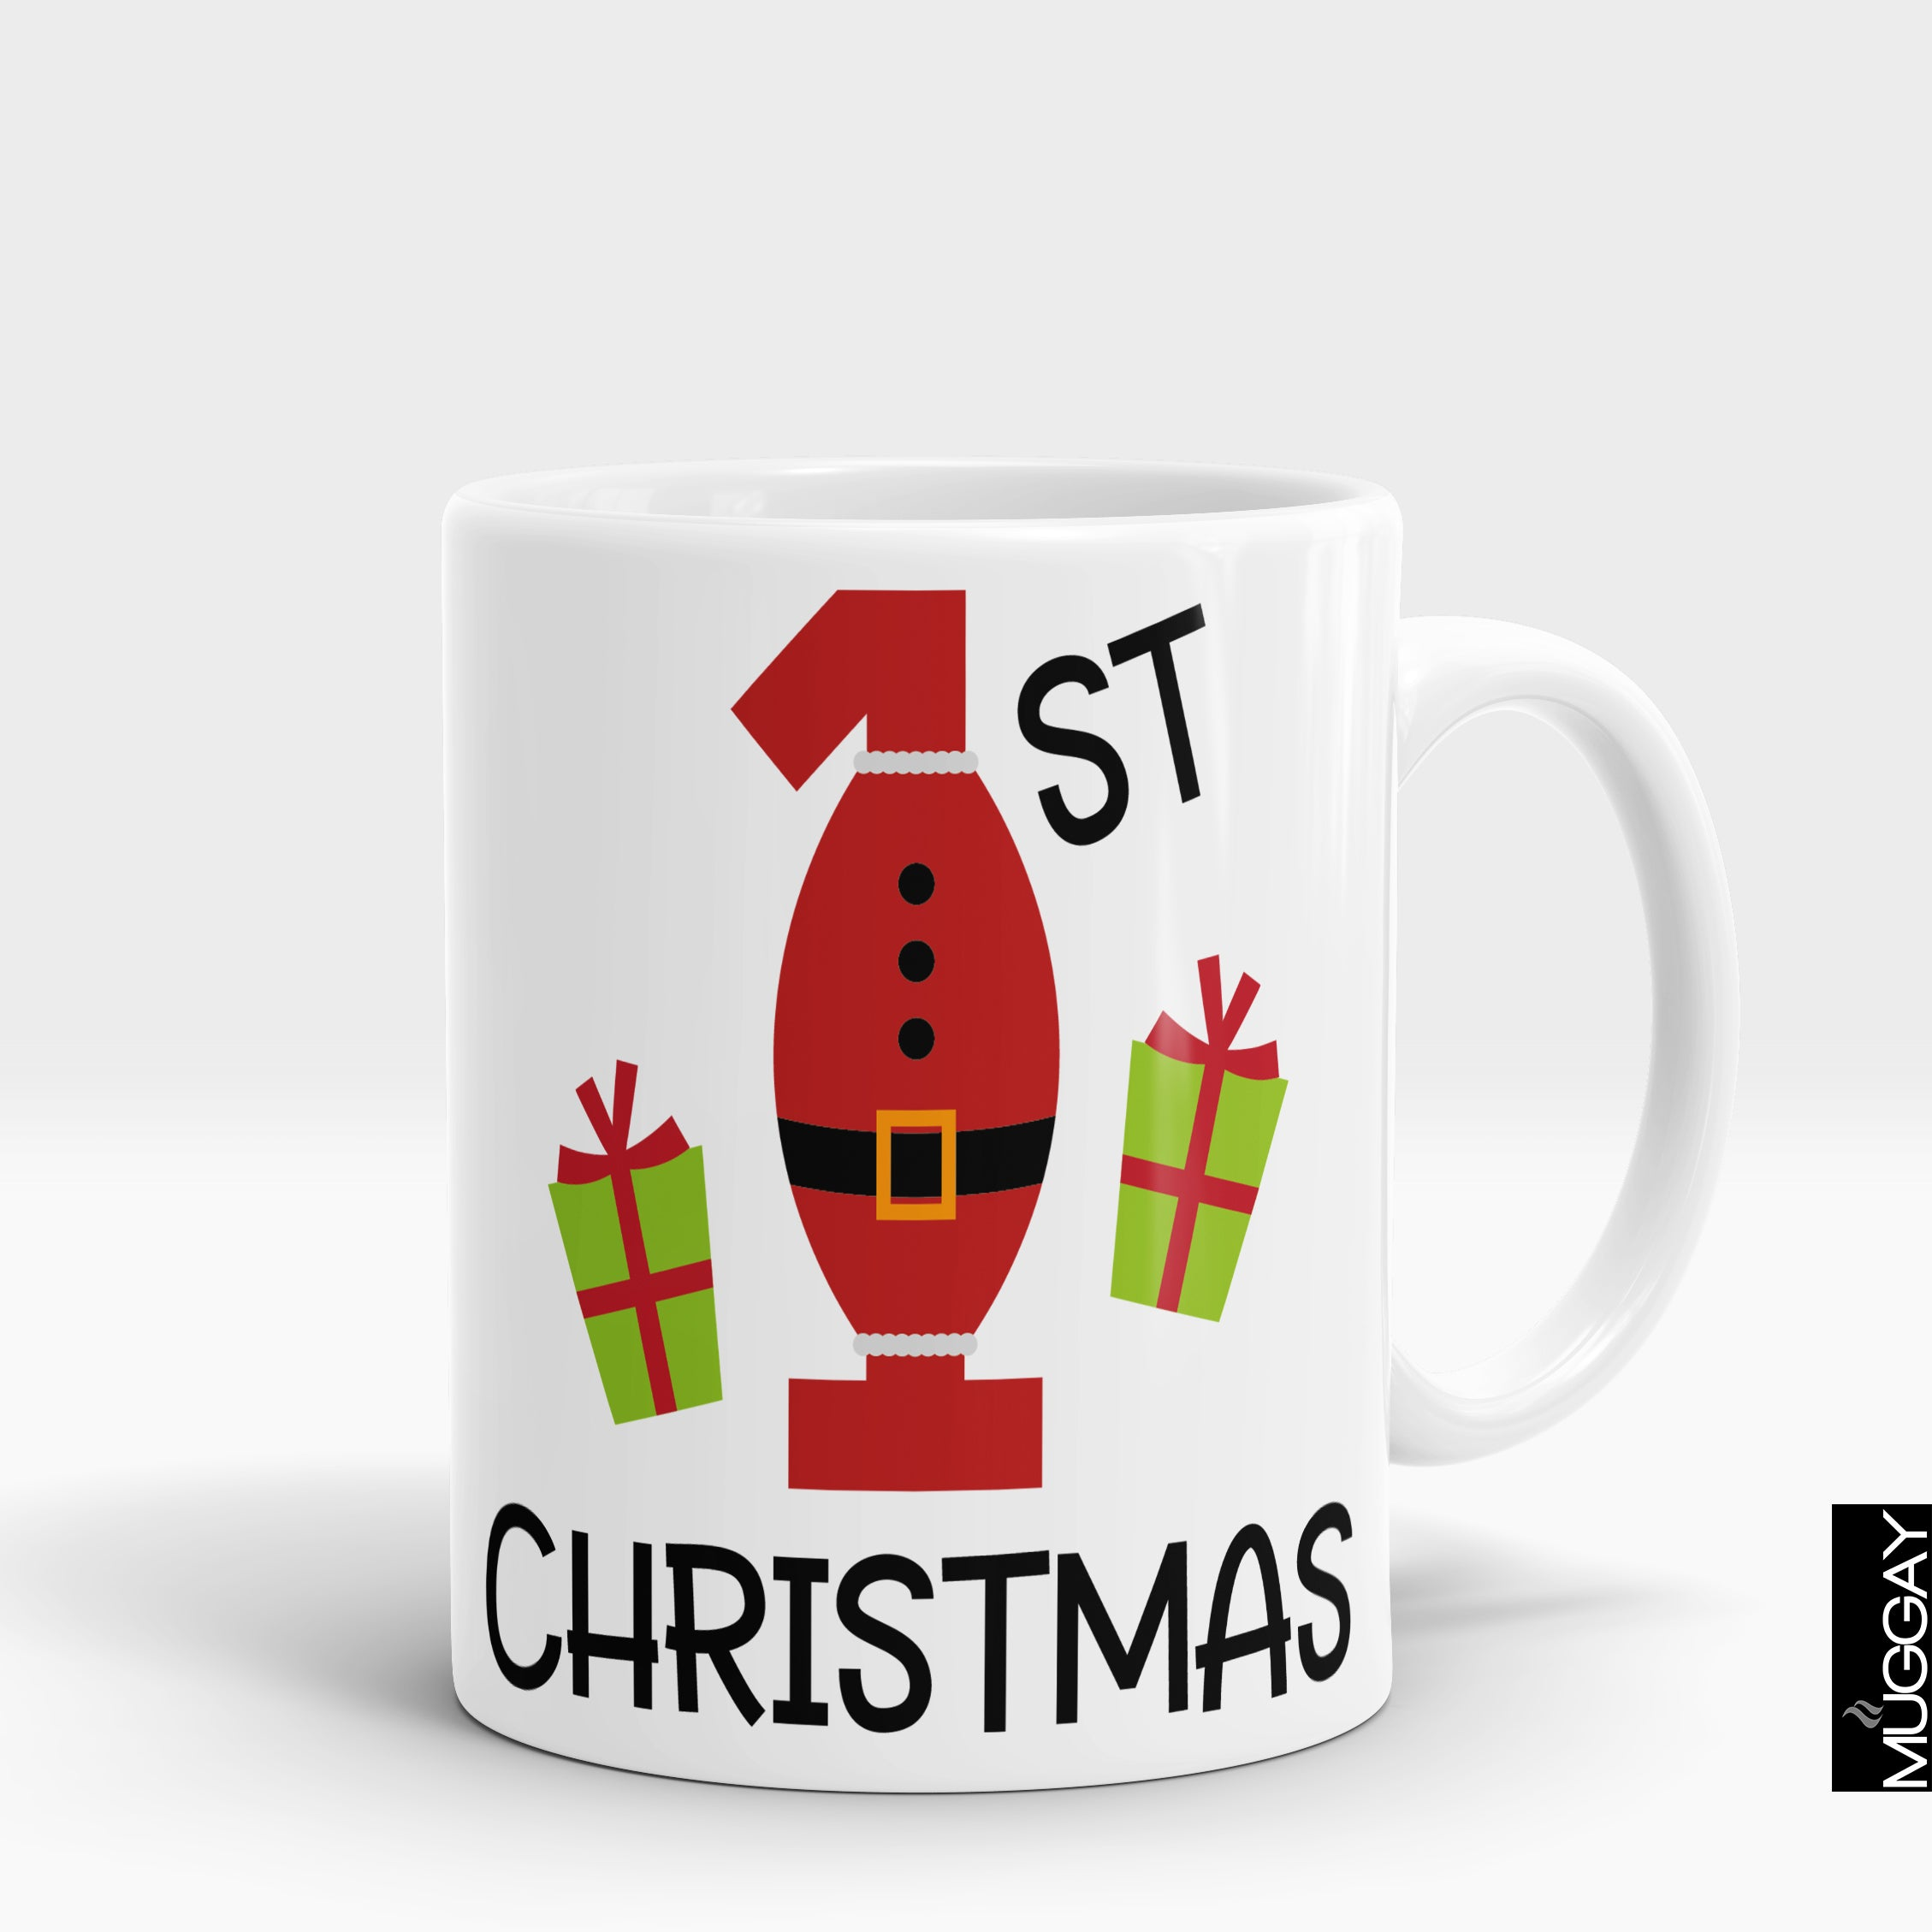 1st Christmas Mug - Muggay.com - Mugs - Printing shop - truck Art mugs - Mug printing - Customized printing - Digital printing - Muggay